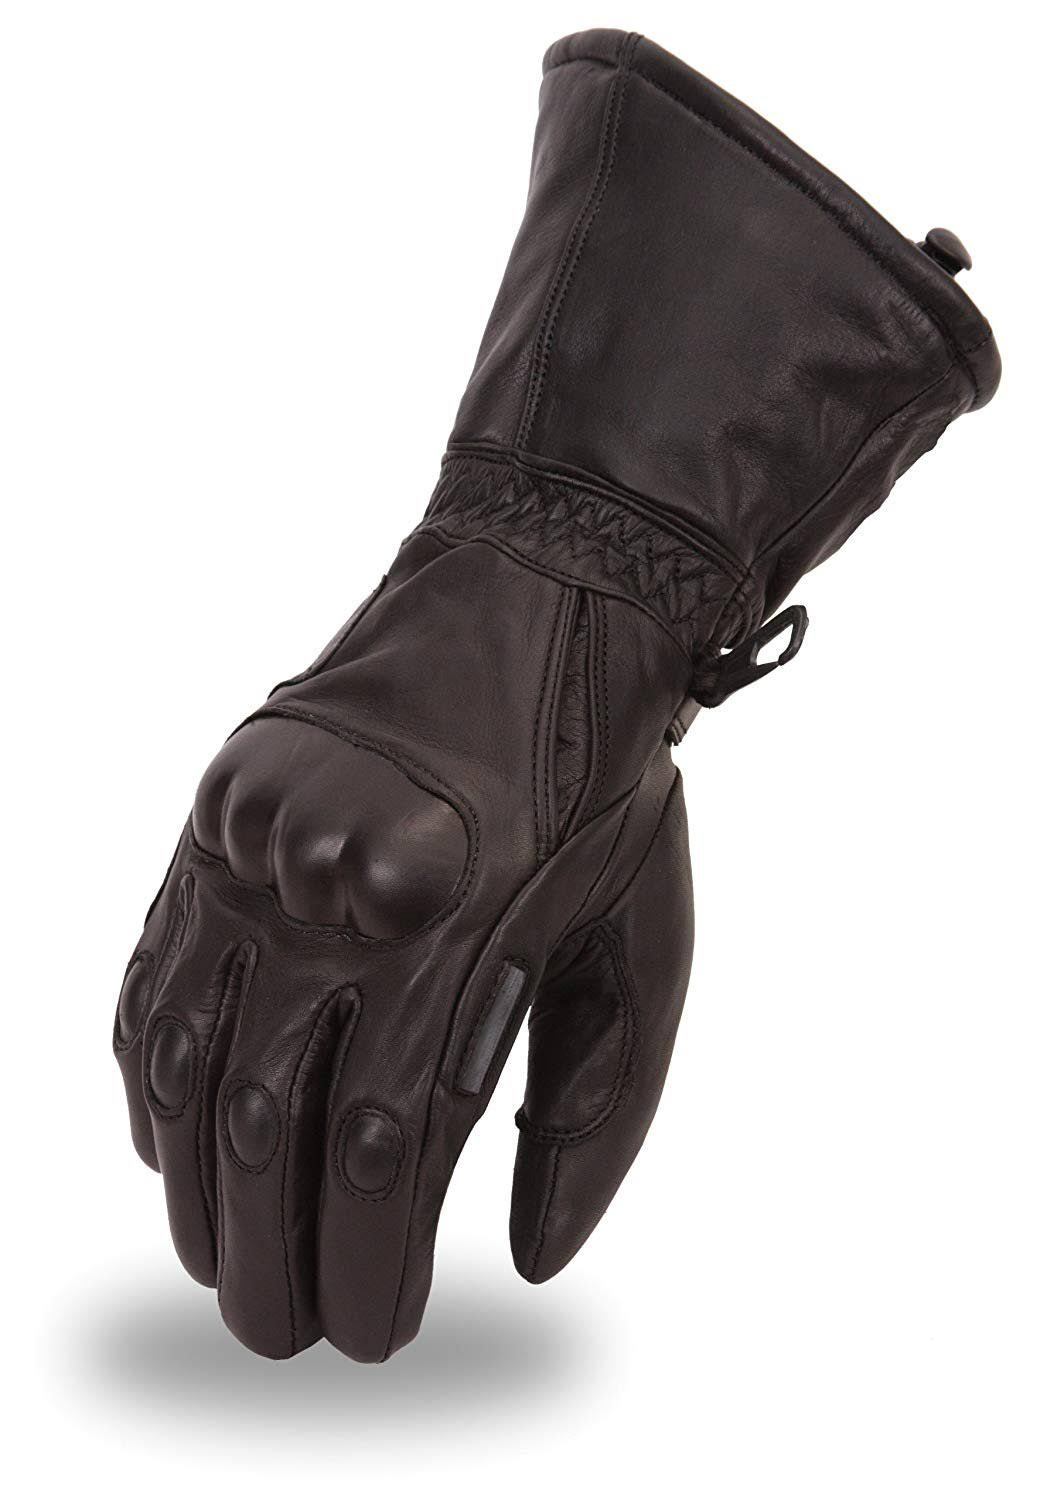 First Manufacturing Leather Waterproof Gaunlet Gloves - X-Large